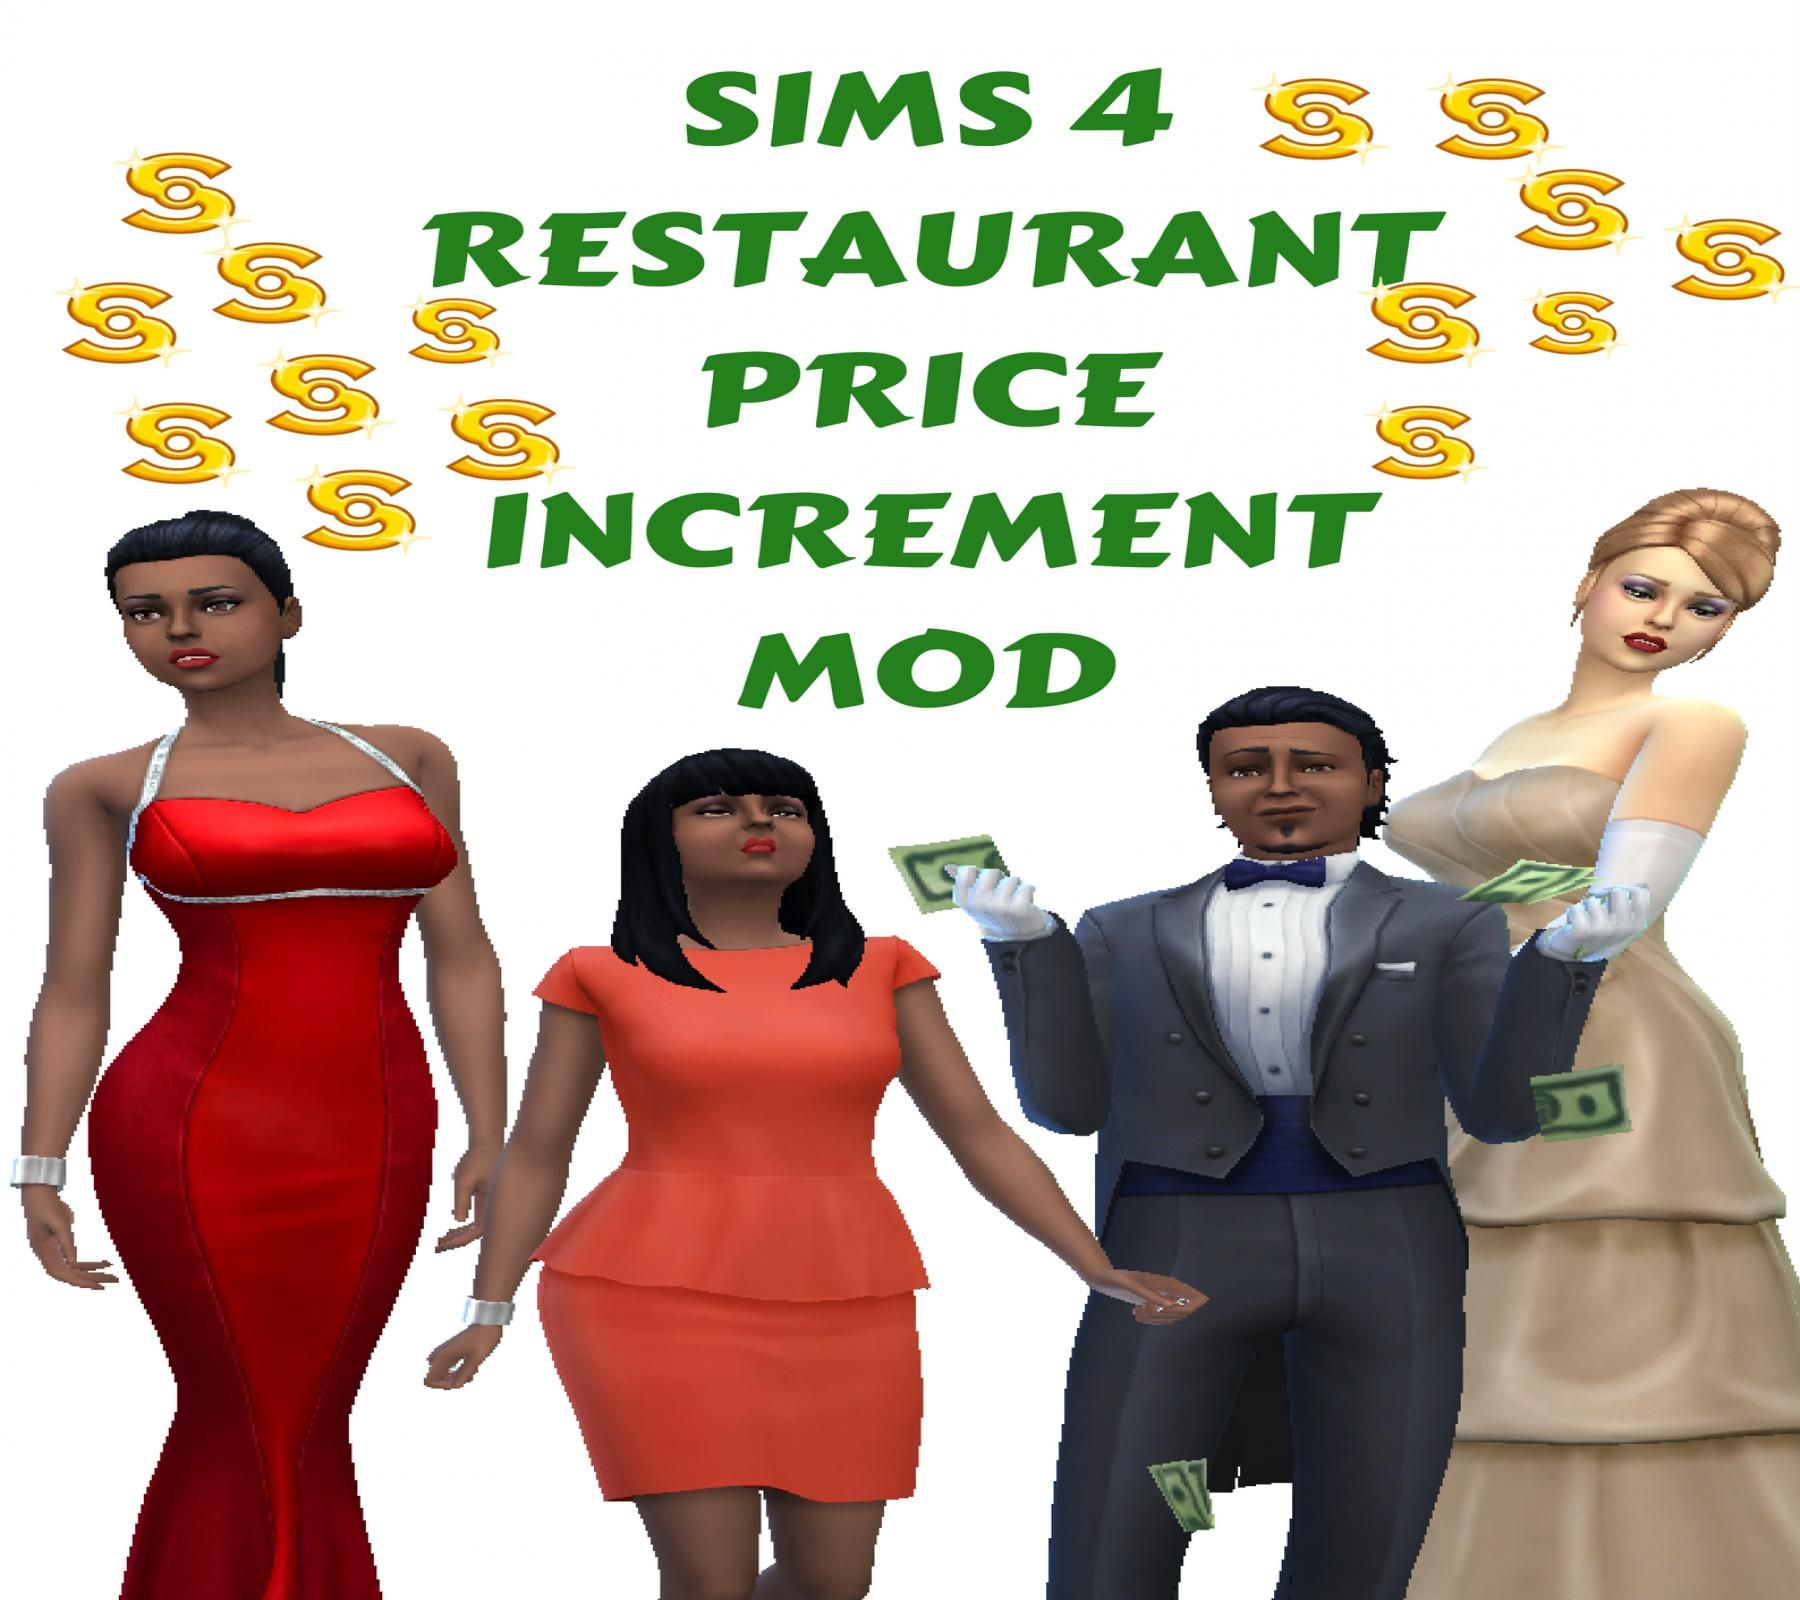 Figsandpersimmons S4 mm CAS and mods t Sims and